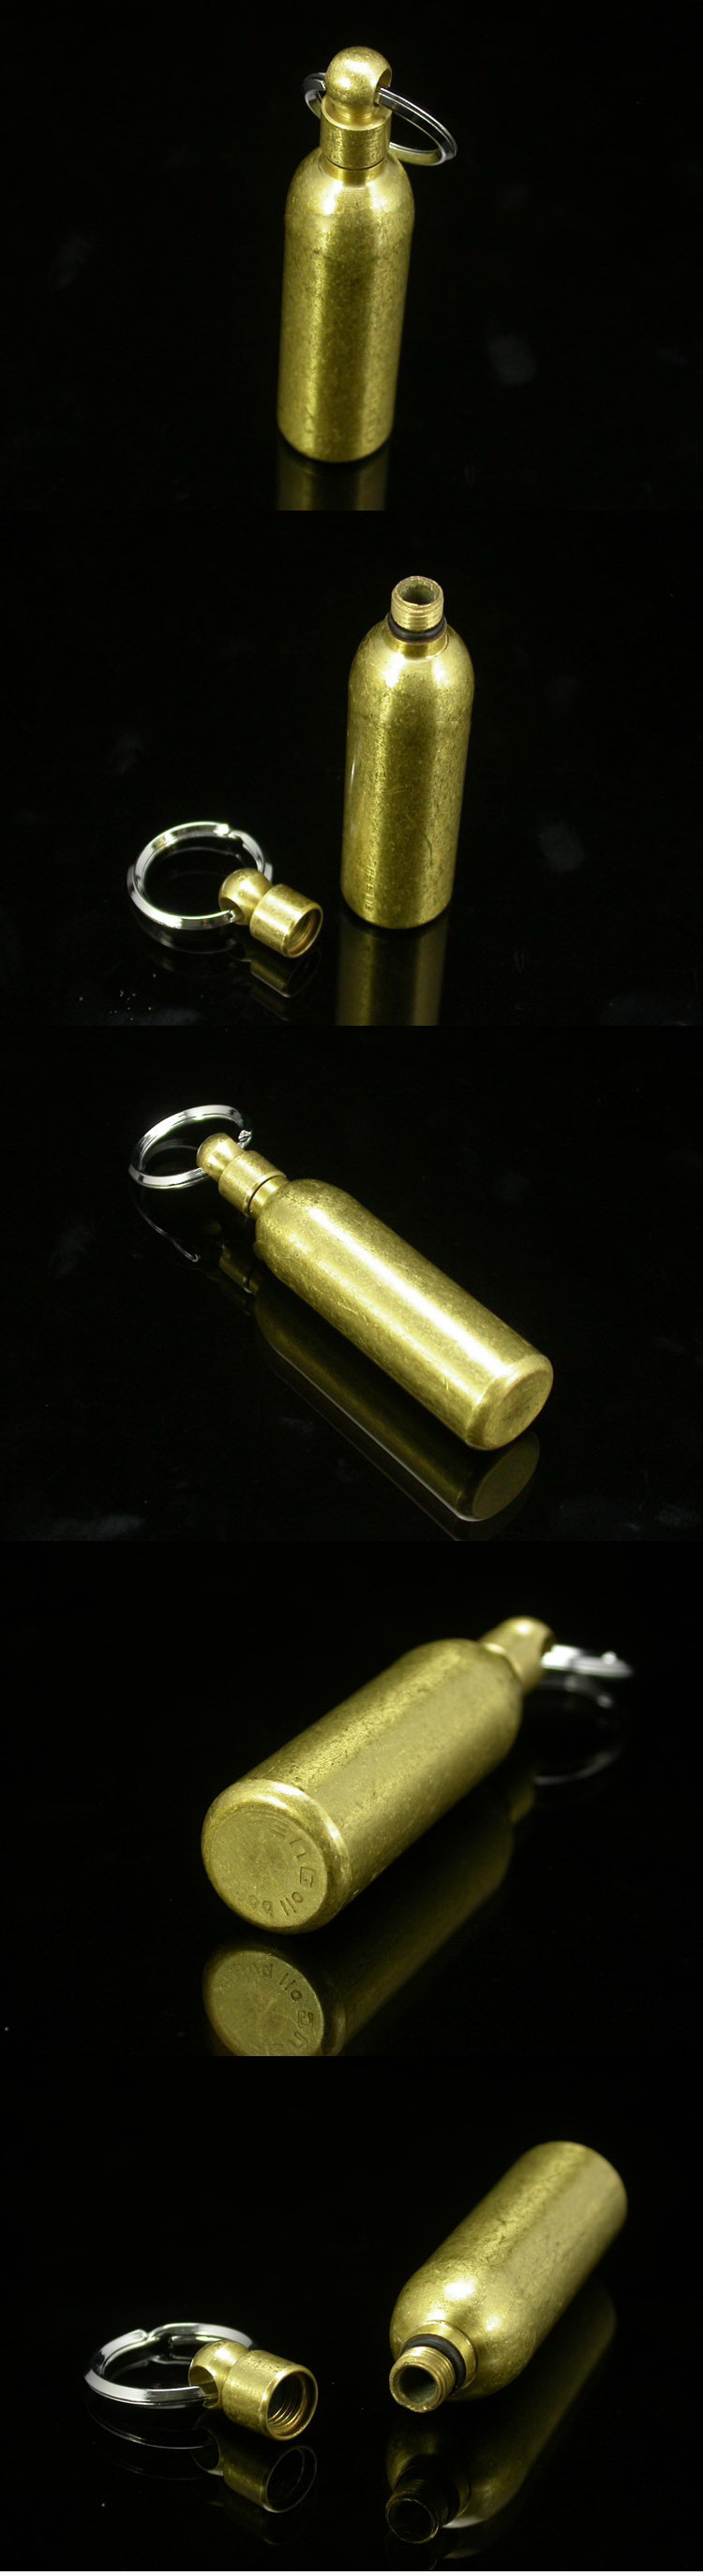 Vintage Brass Copper Mini Fuel bottle Empty bottle Man for lighter Accessory